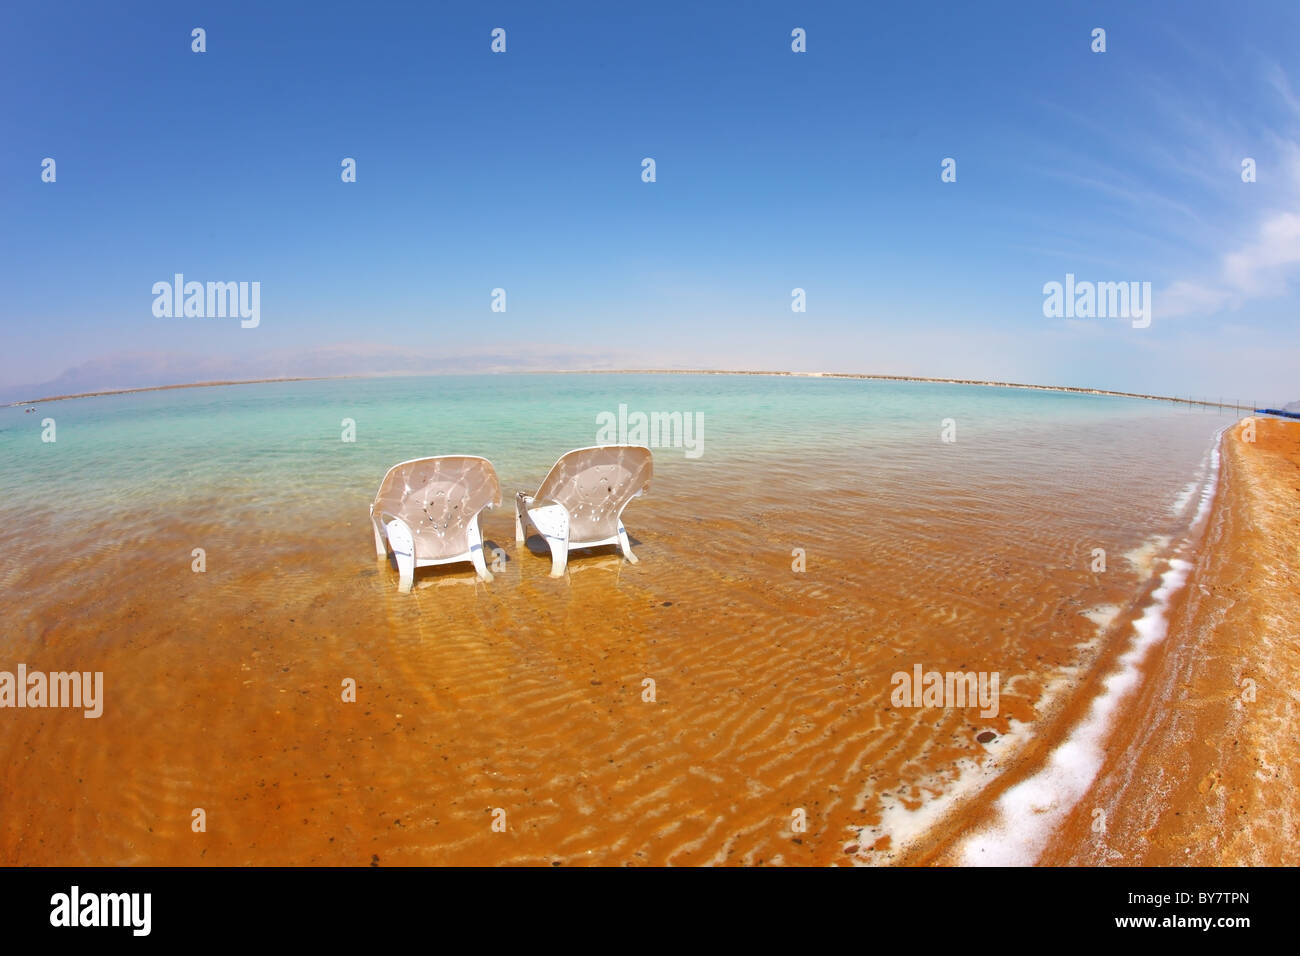 Two white beach chairs stood side by side in the clear water at the beach. Dead Sea, Israel - Stock Image